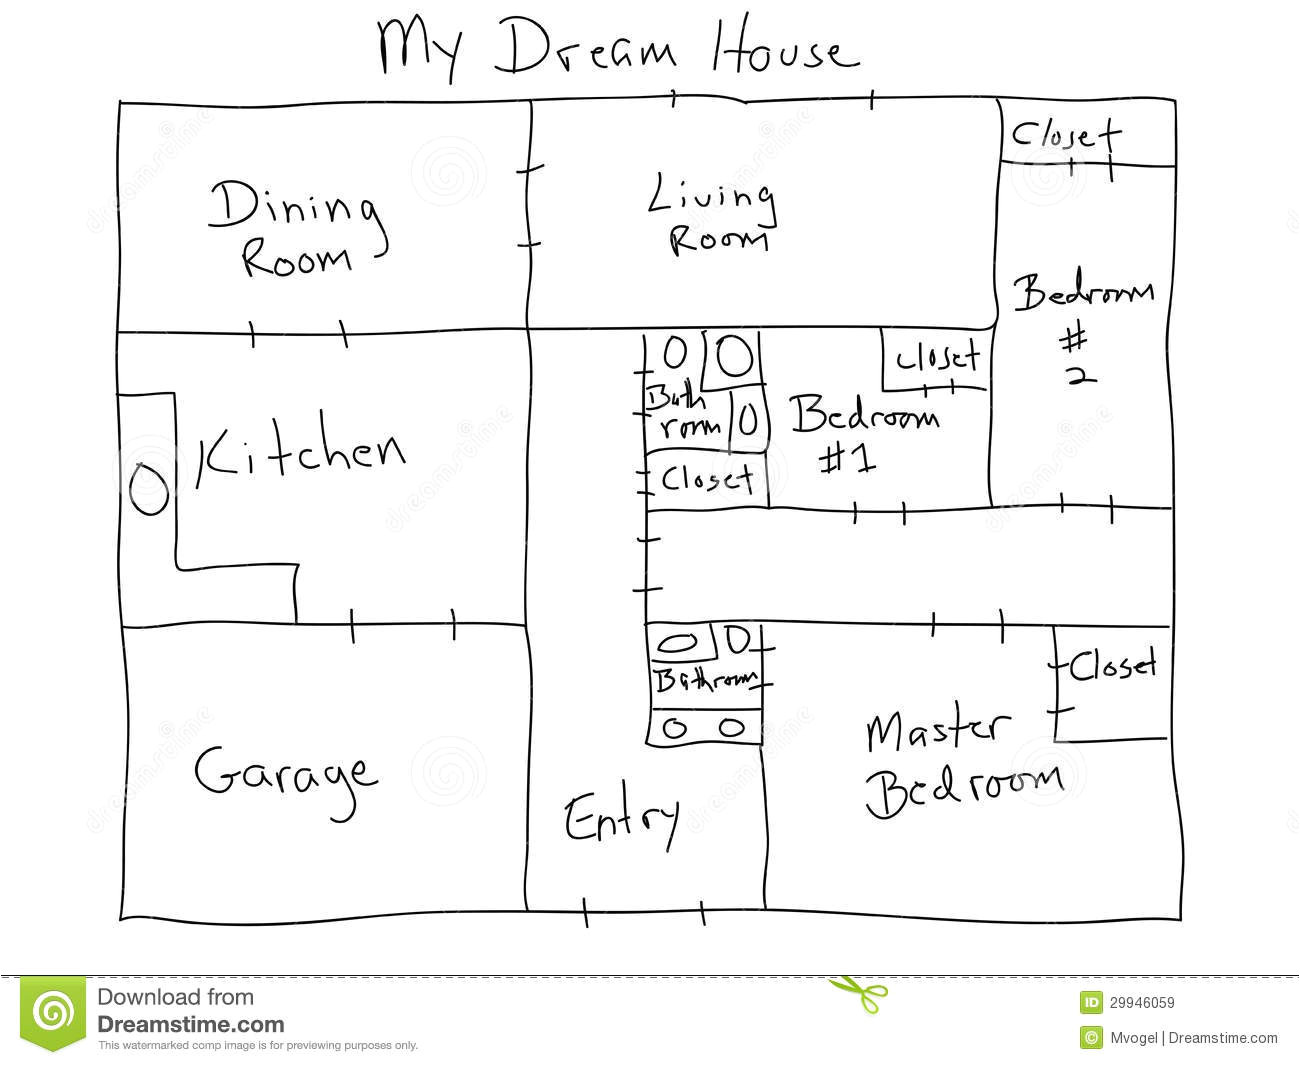 royalty free stock images image hand drawn house plan image29946059